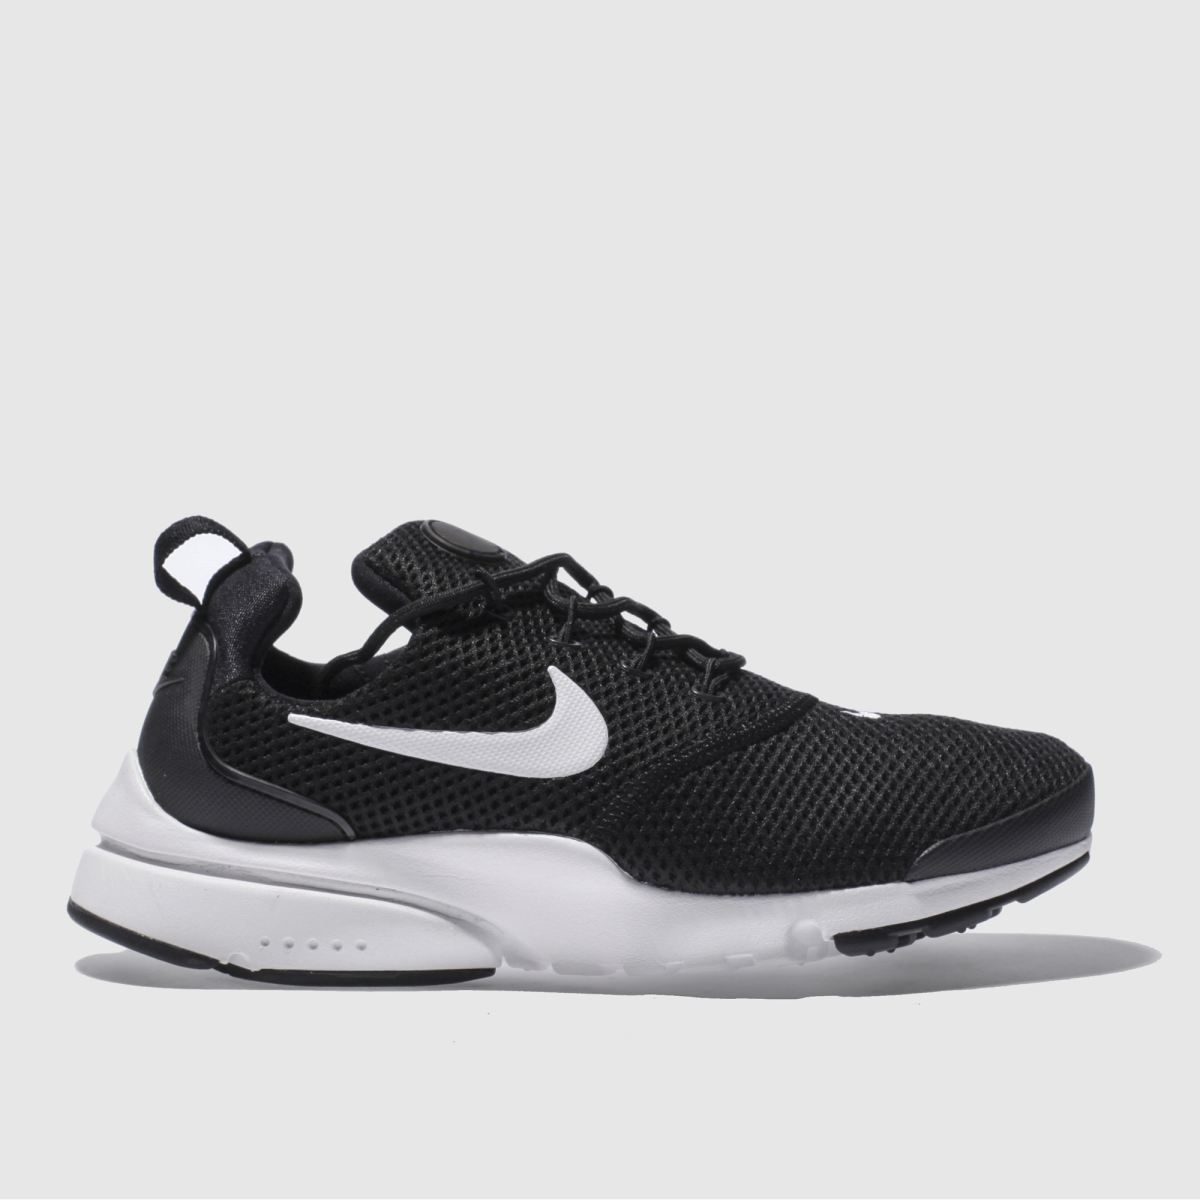 nike black & white presto fly trainers